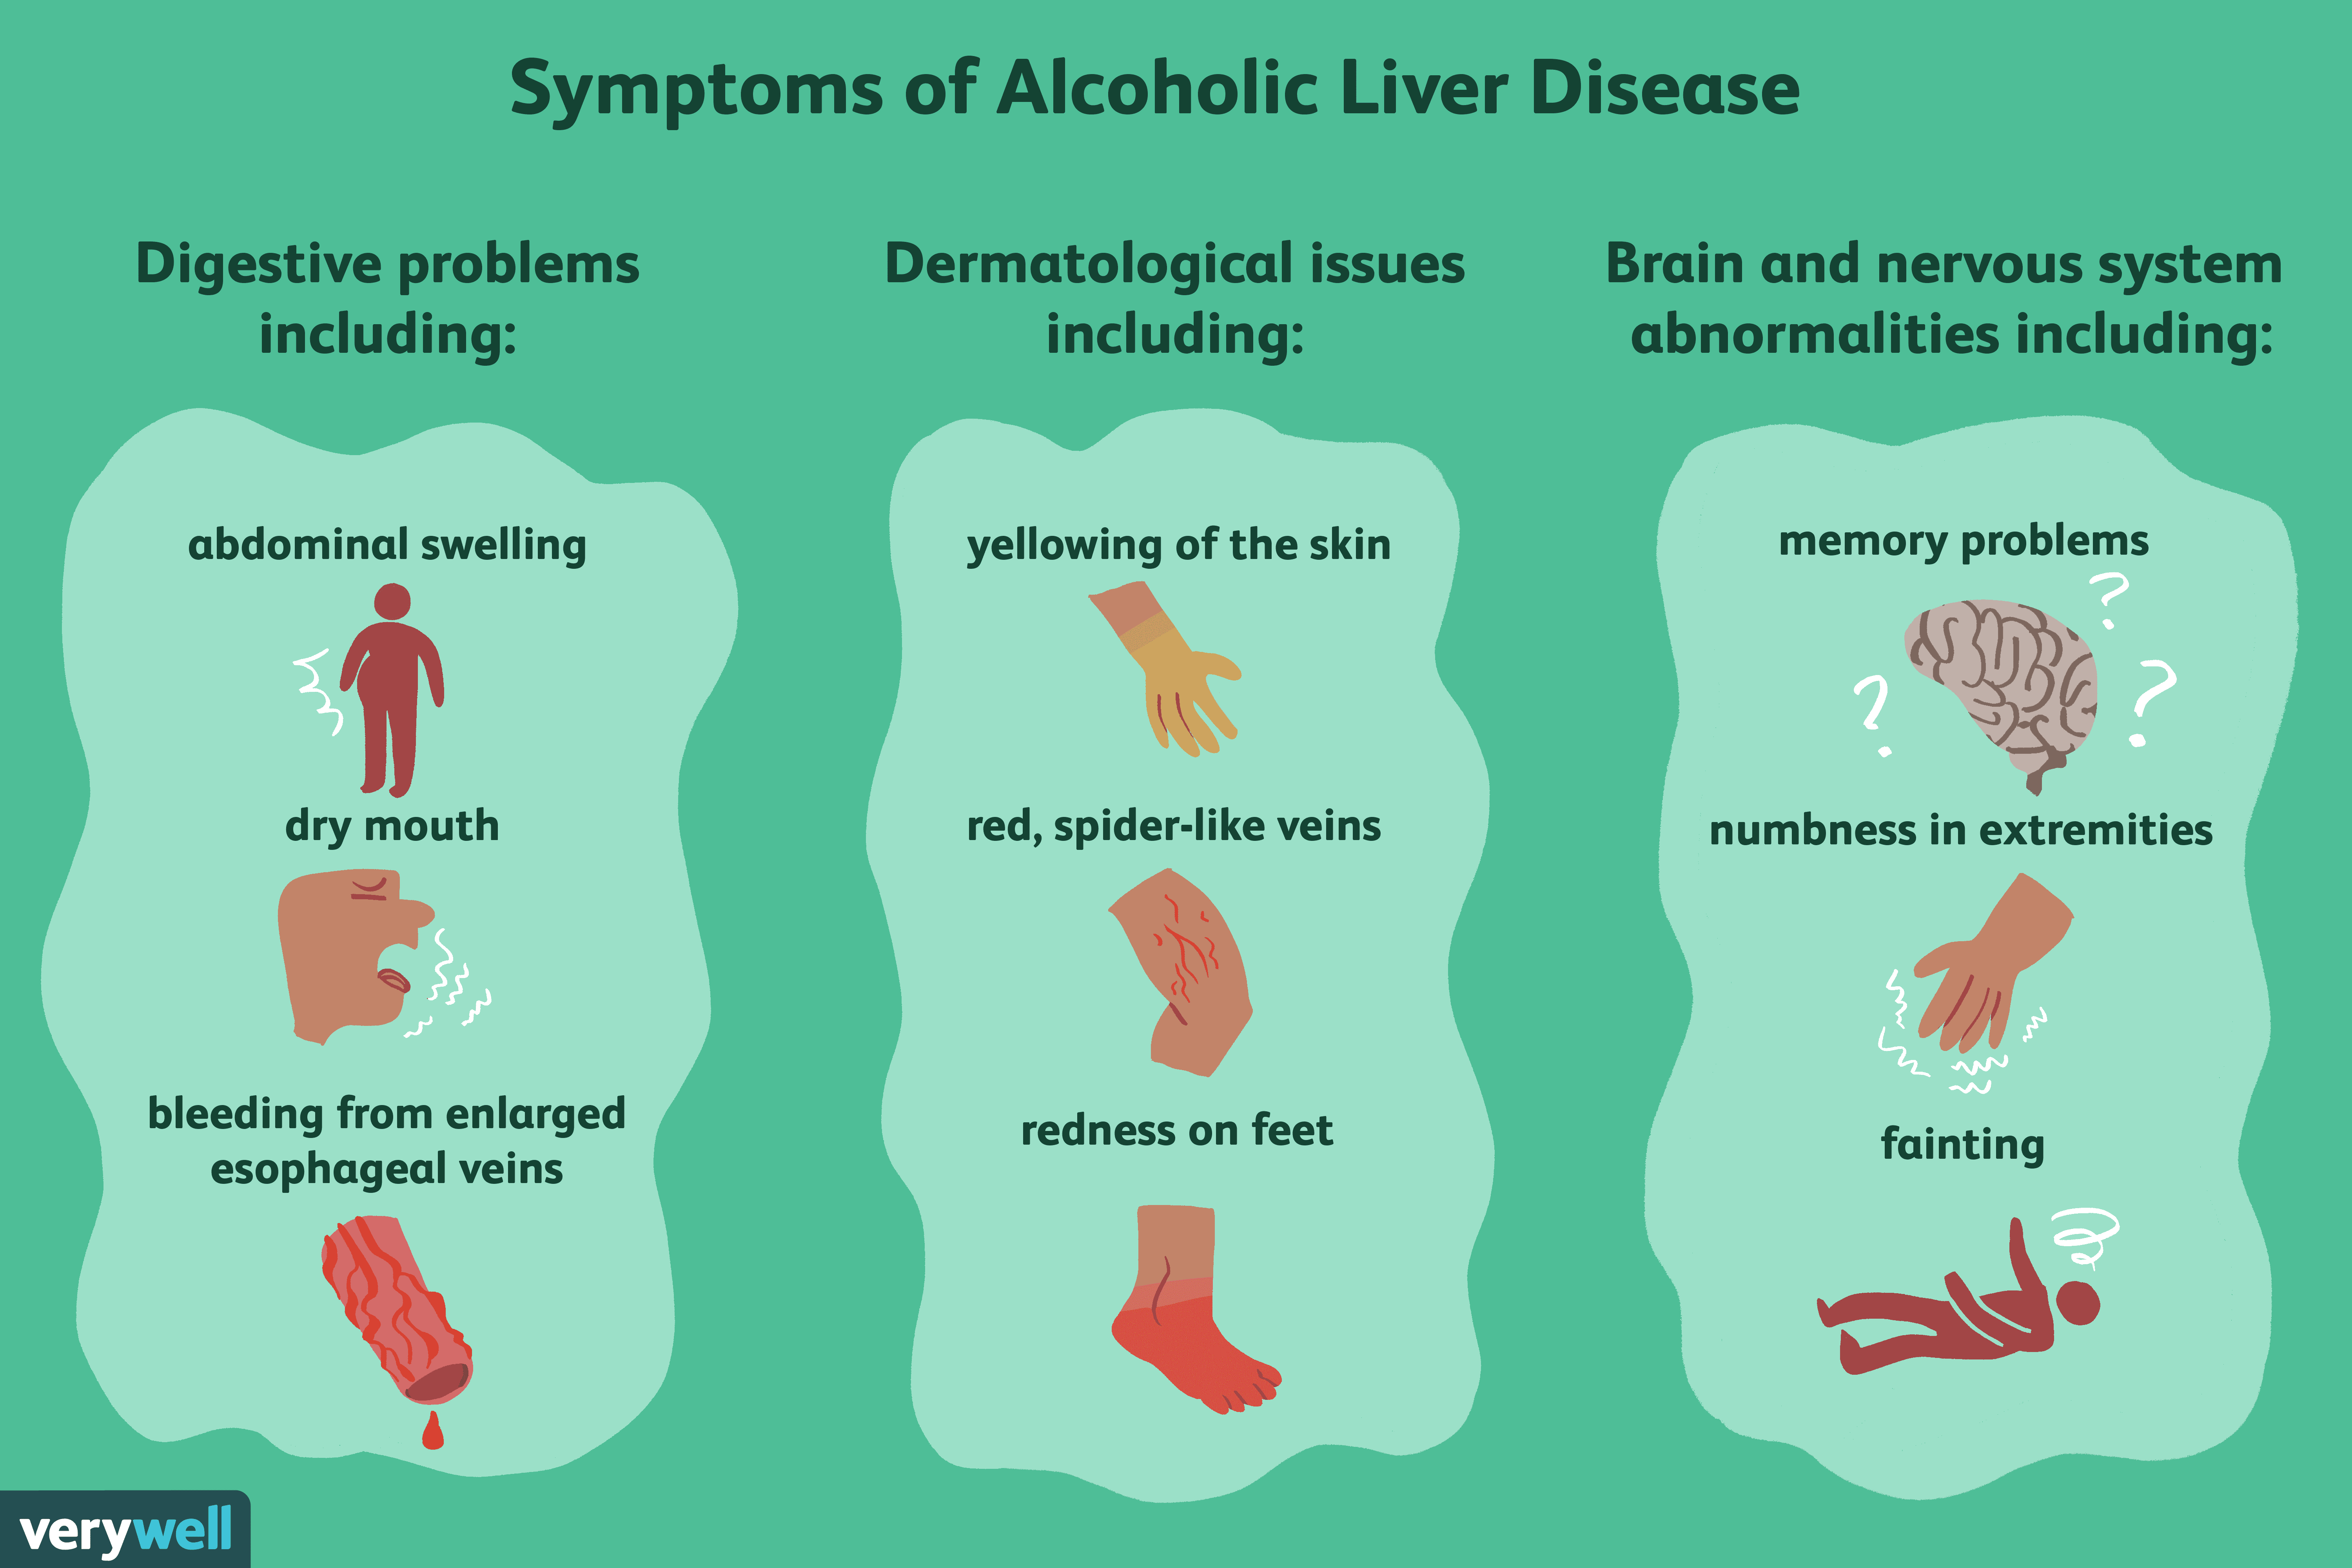 How Long Can I Live With Alcoholic Liver Disease